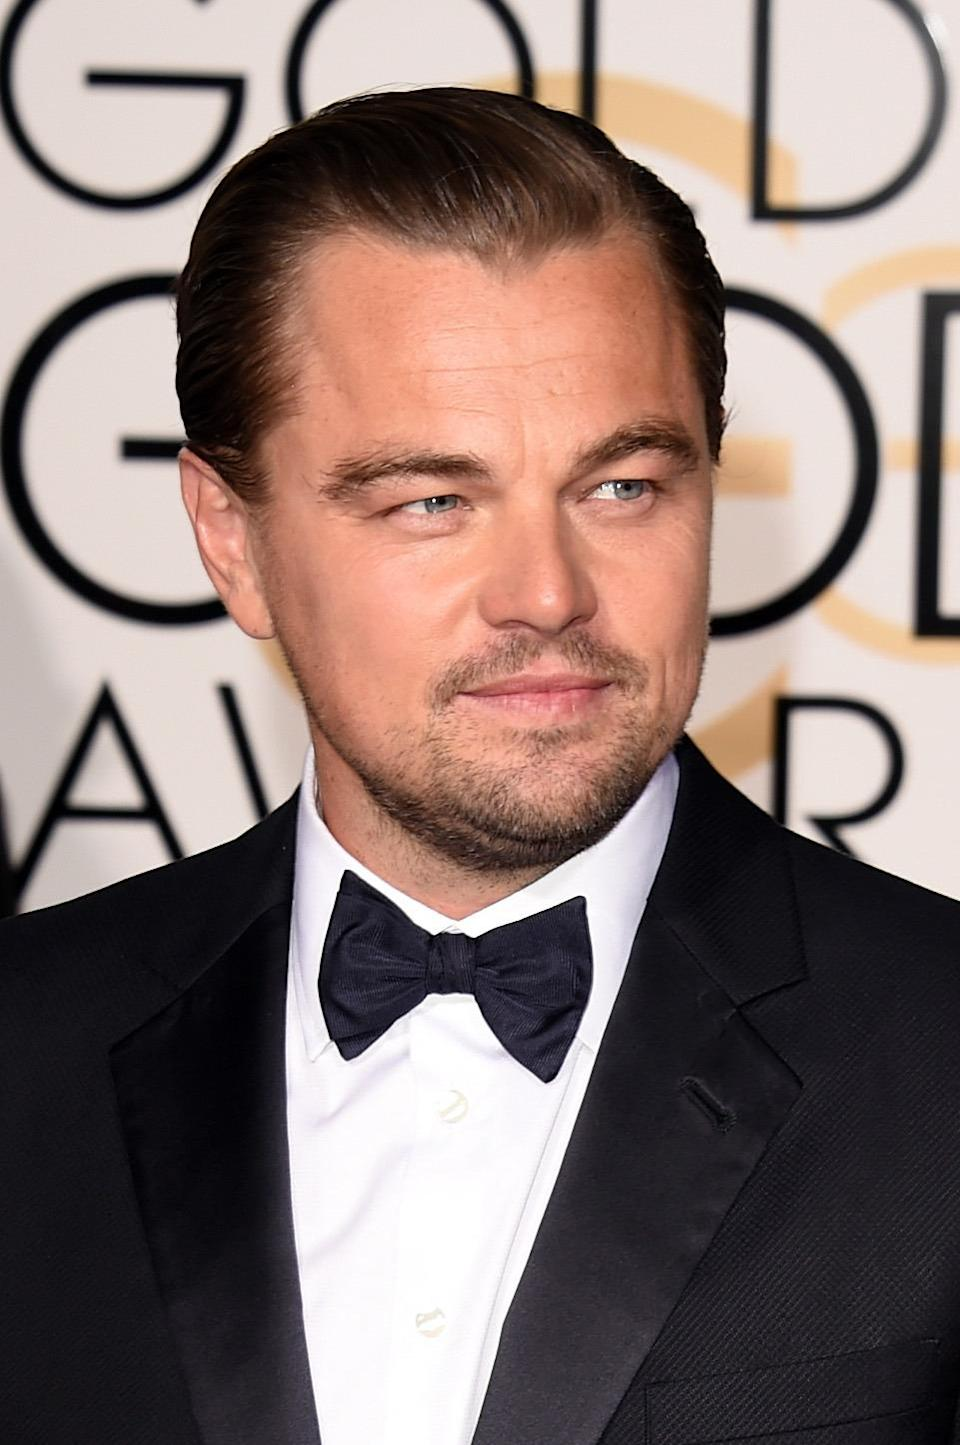 <p>The 40-year-old sported a bronzed hue, but it may be the work of the St. Barts sun. Leo was spotted sunbathing surrounded by beautiful women, unsurprisingly. <i>(Photo: Getty Images)</i></p>